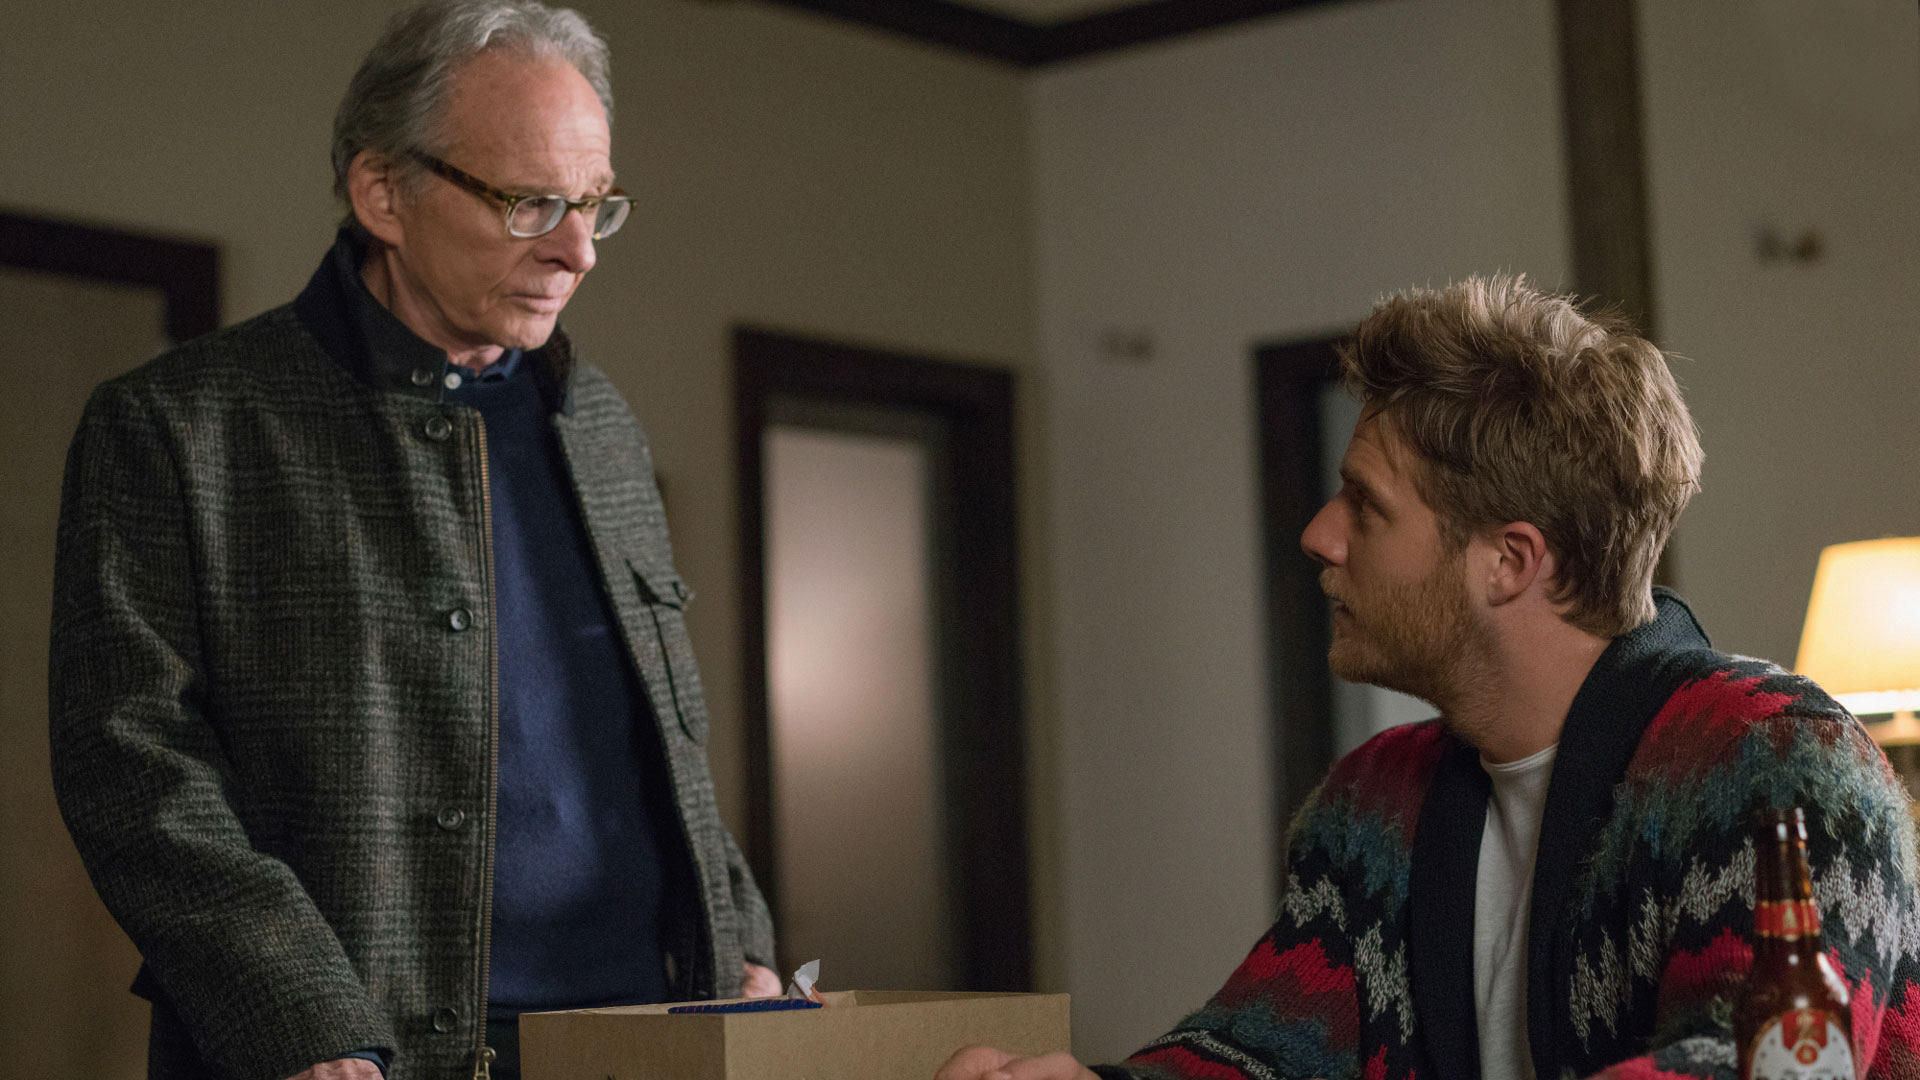 Ron Rifkin as Dennis Finch and Jake McDorman as Brian Finch